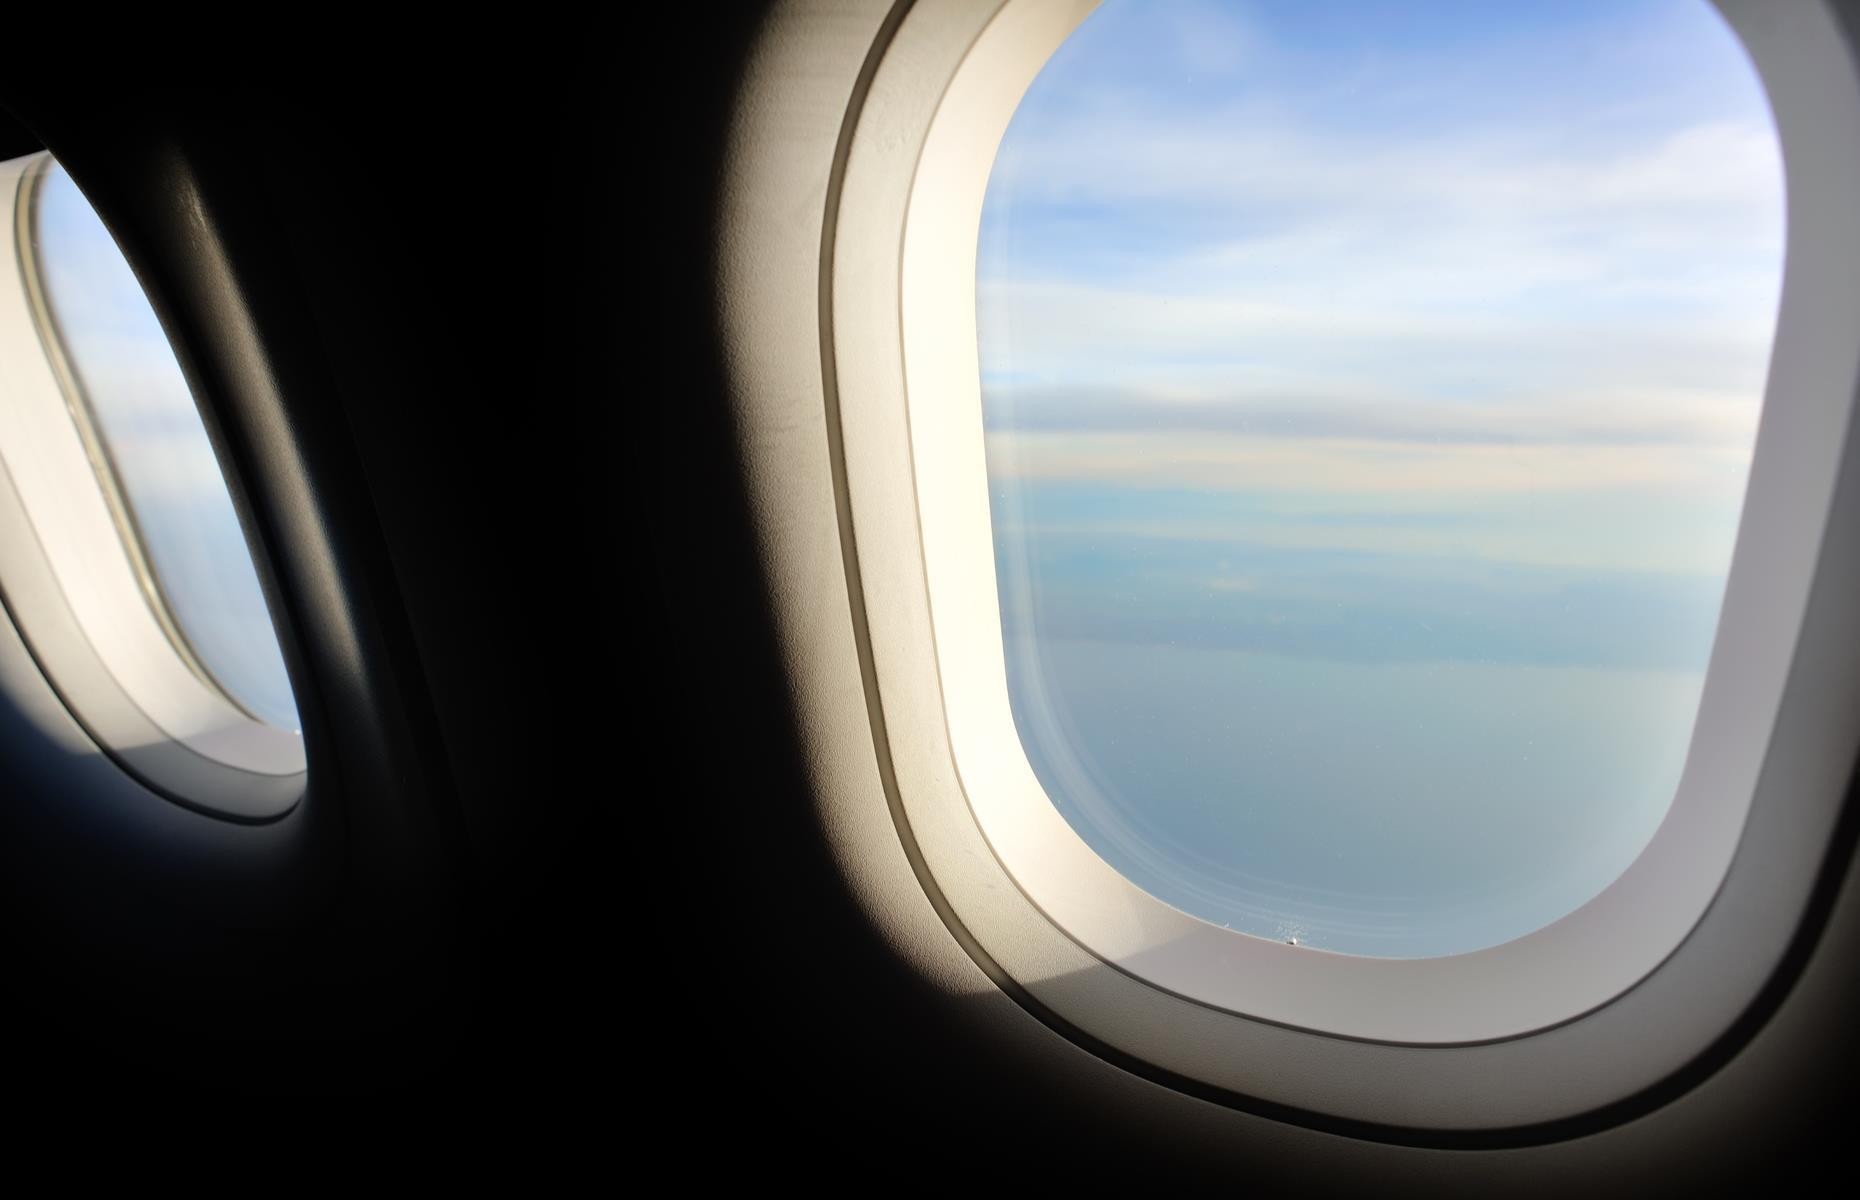 """Slide 44 of 63: Aircraft windows are made in layers.Surf Air's COO explains: """"[There's] aglass window on the outside, an air gap, another glass window in the middle (with a little hole) and another layer usually made of plastic, which stops passengers scratching windows. The hole is an important safety feature which allows the cabin pressure to be consistent all the way to the outer window. If the outside window failed, the middle window would still be sufficient enough to maintain the cabin pressure, even with the tiny hole."""""""